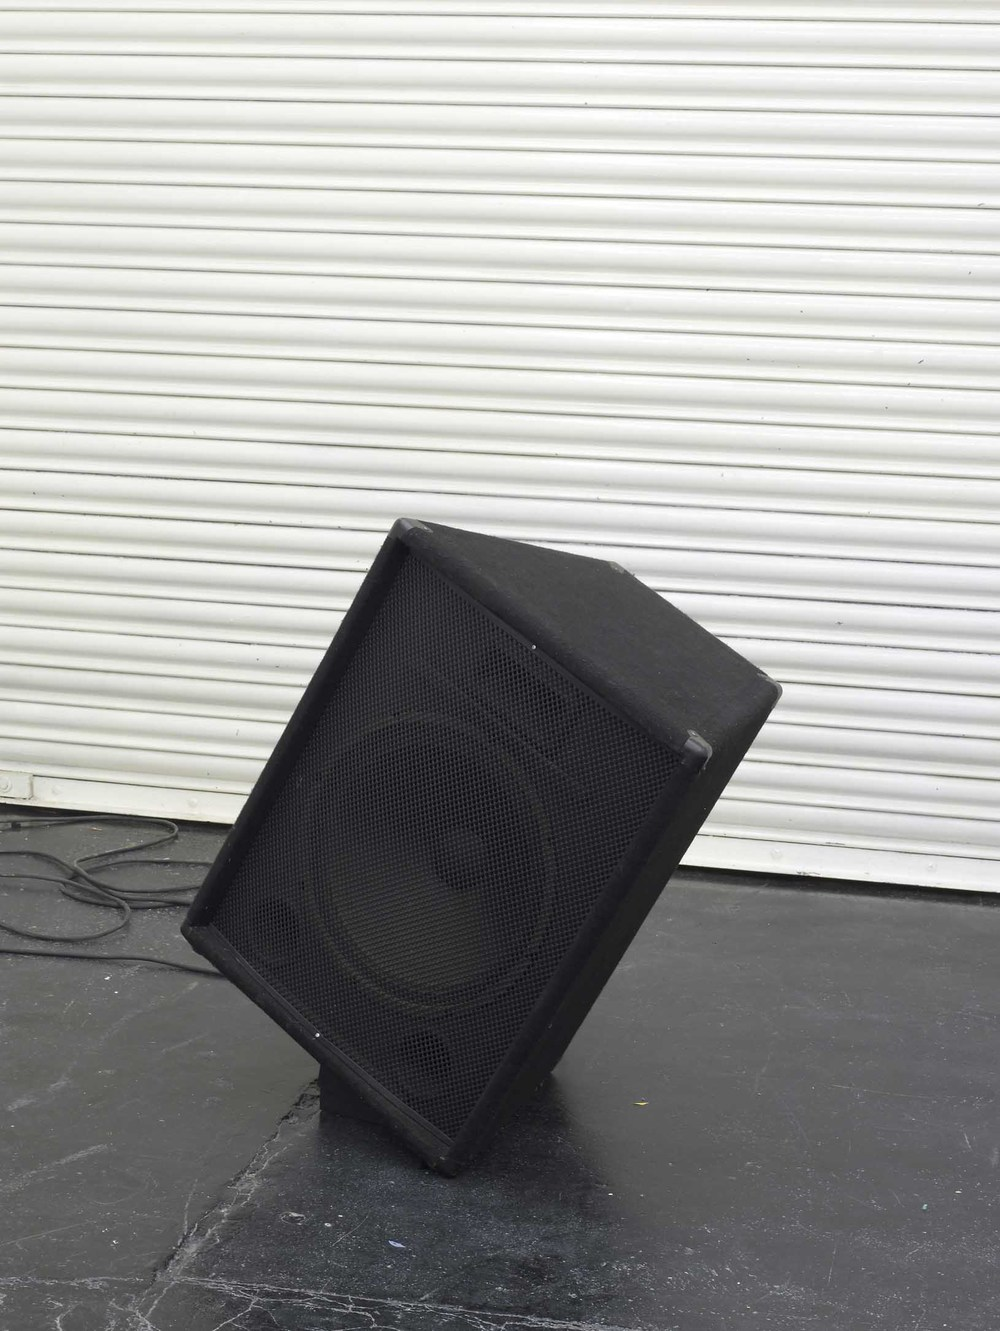 Aloïs Godinat Untitled 2005-2010 Speaker, sound, polyurethane wedge 65 x 51 x 41 cm / 25.6 x 20.1 x 16.1 In